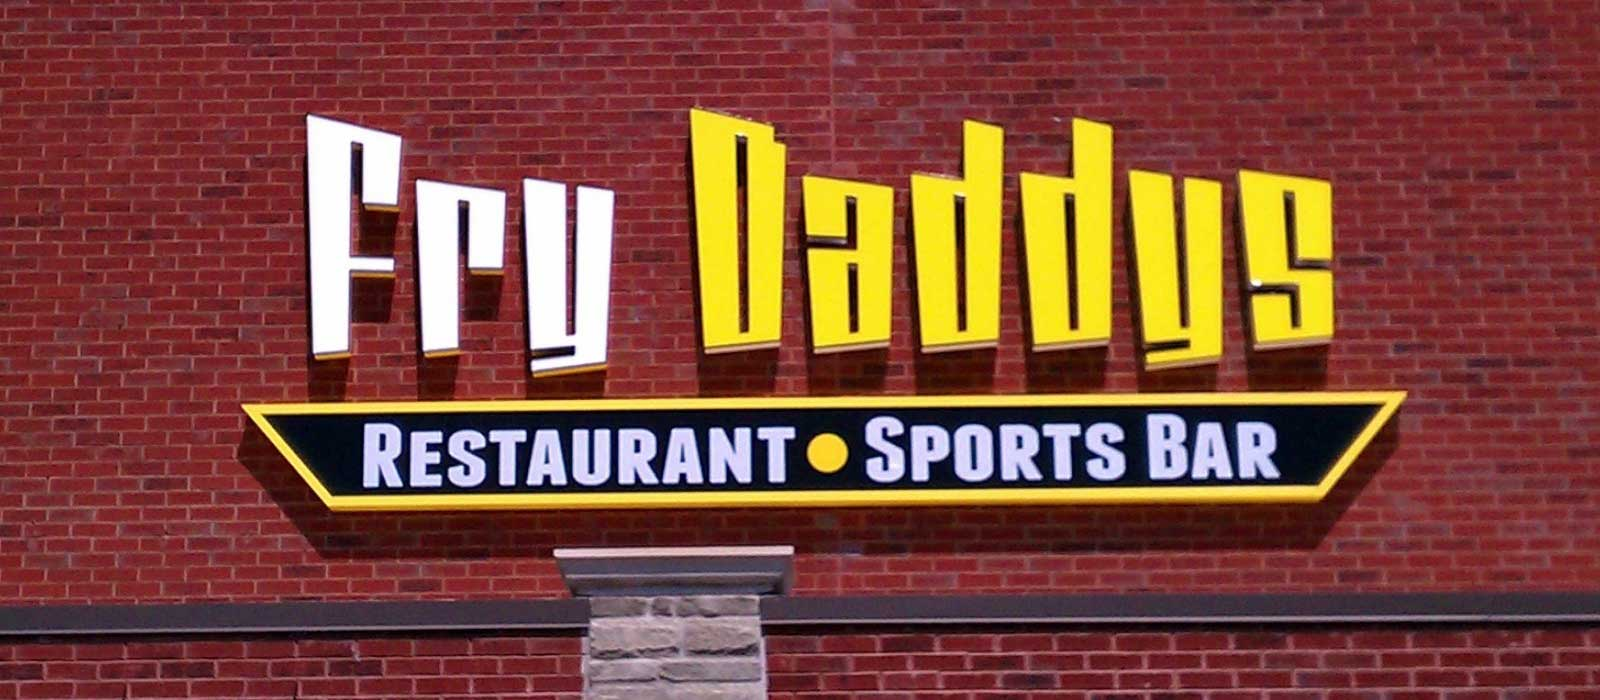 Fry Daddys - Channel Lettering Back Lit Sign